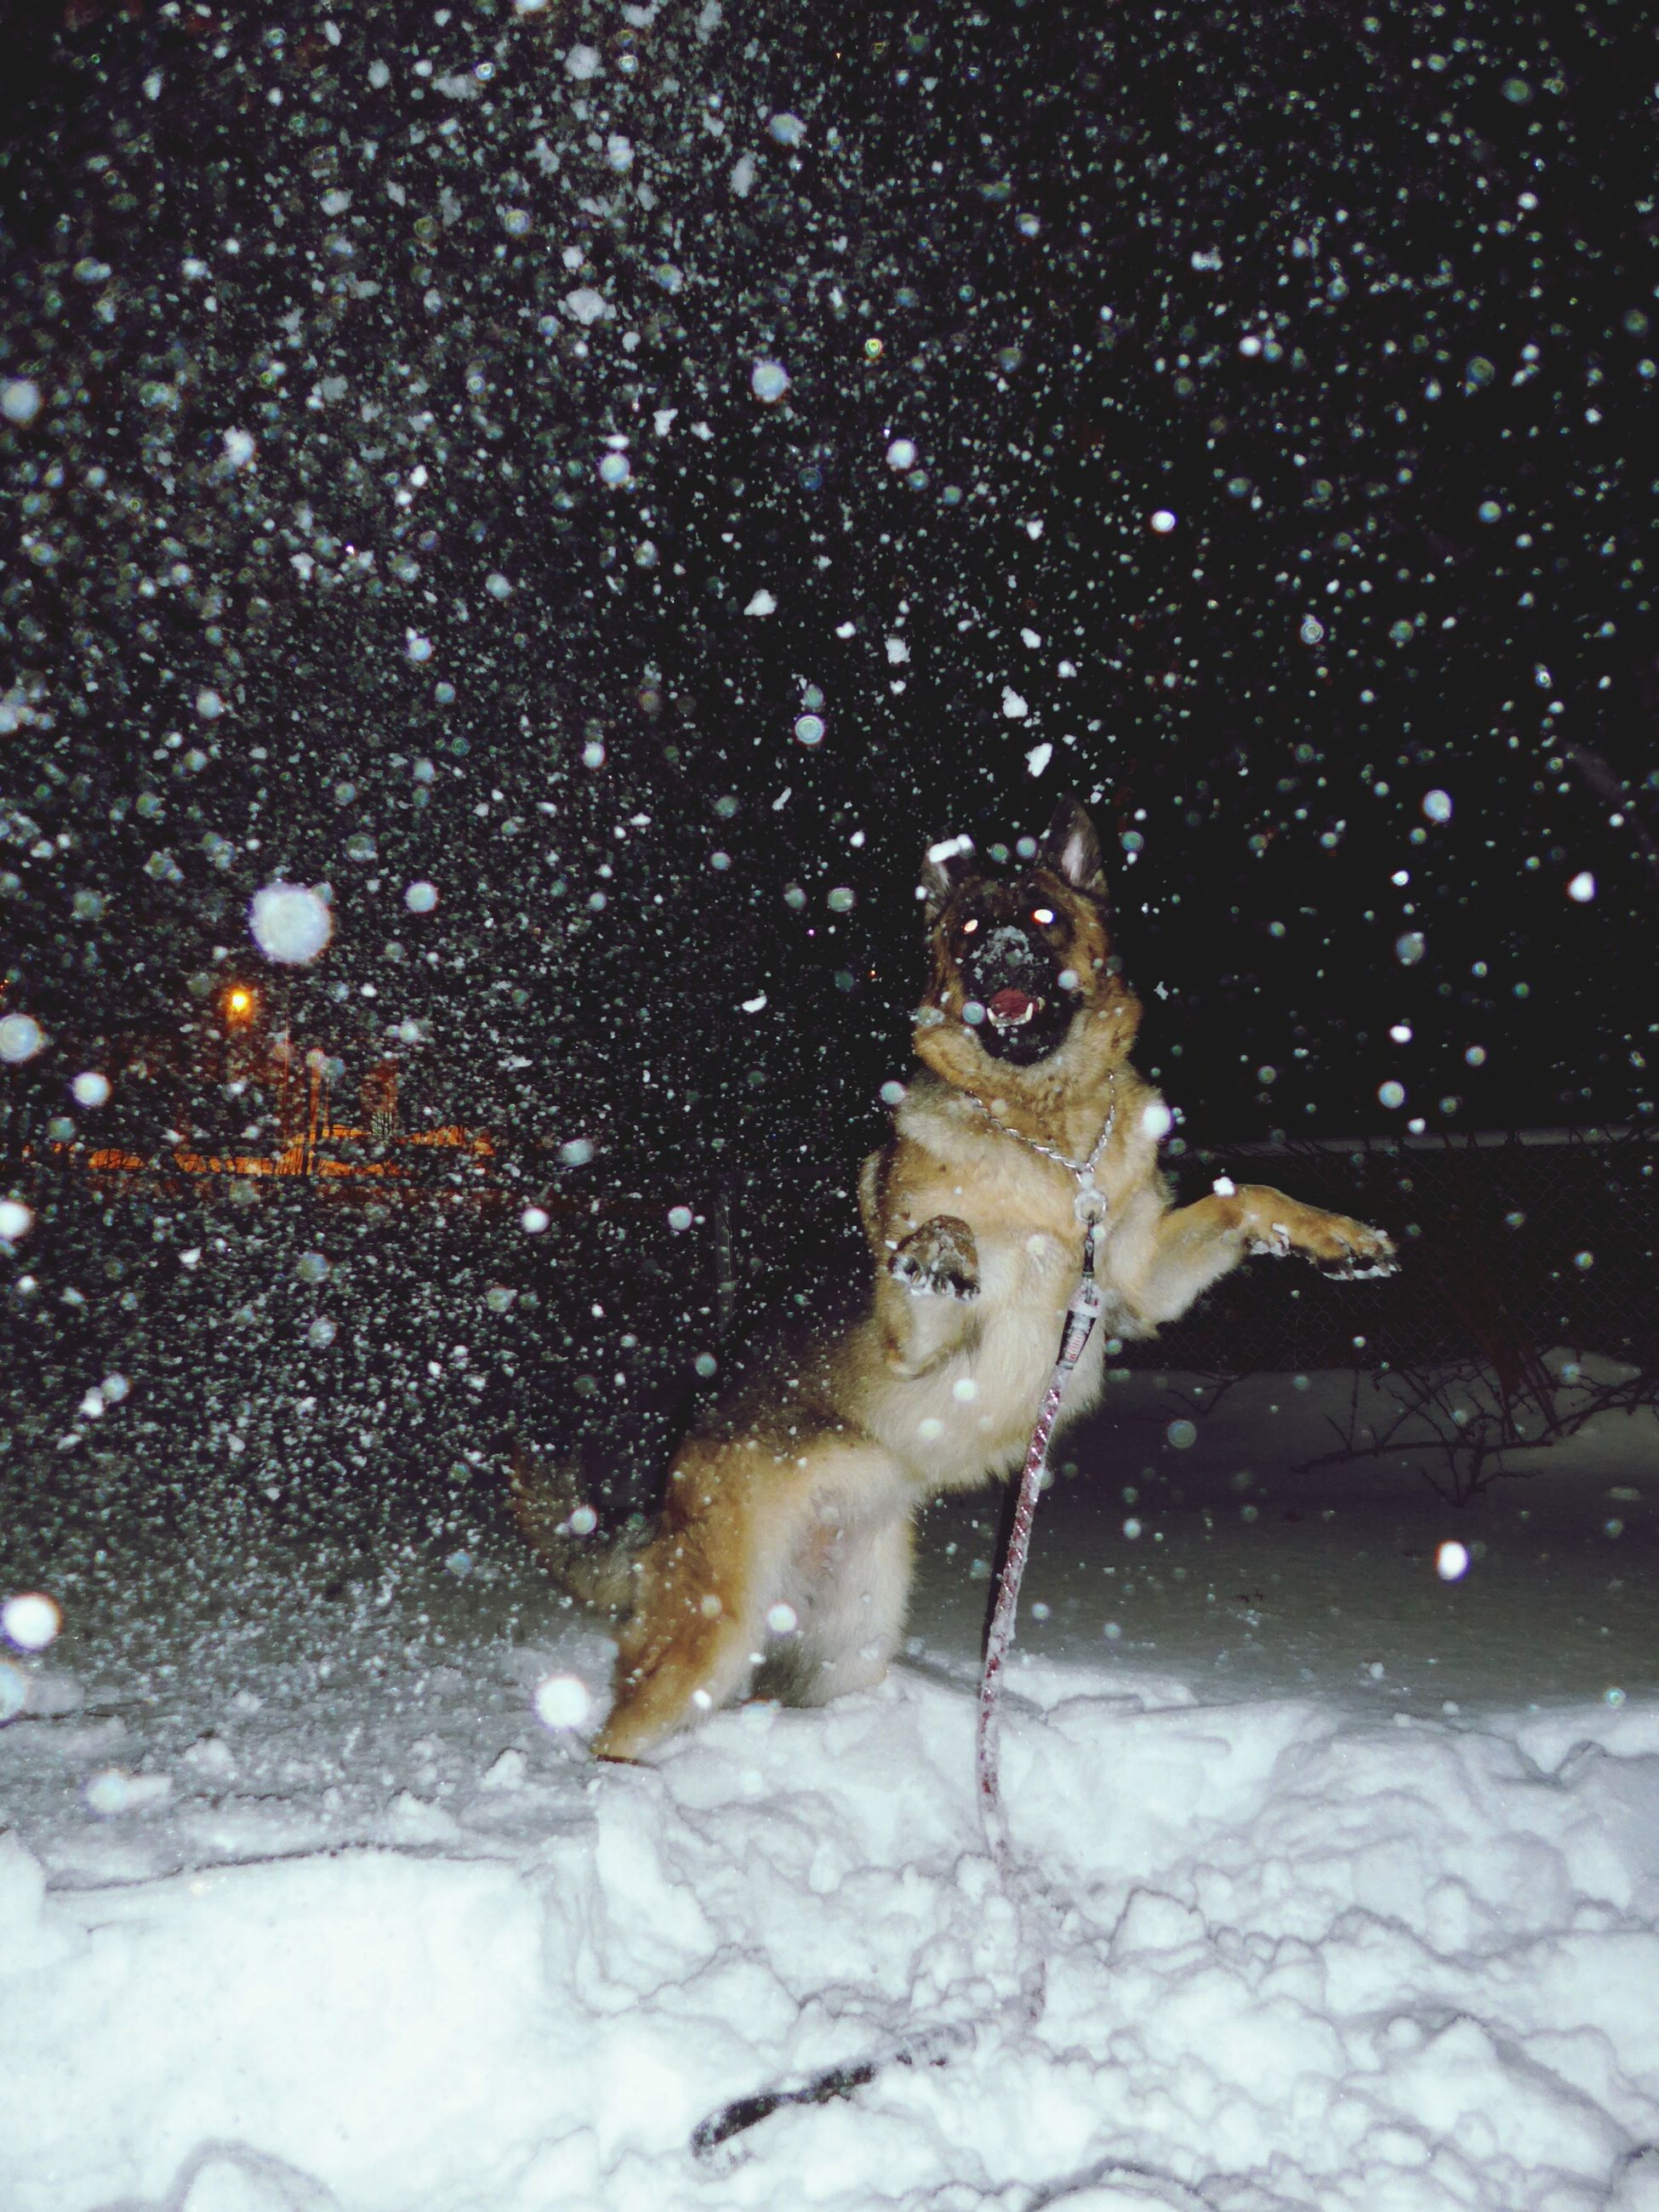 winter, cold temperature, snow, season, one animal, water, animal themes, looking at camera, wet, portrait, night, front view, dog, one person, full length, weather, splashing, motion, pets, reflection